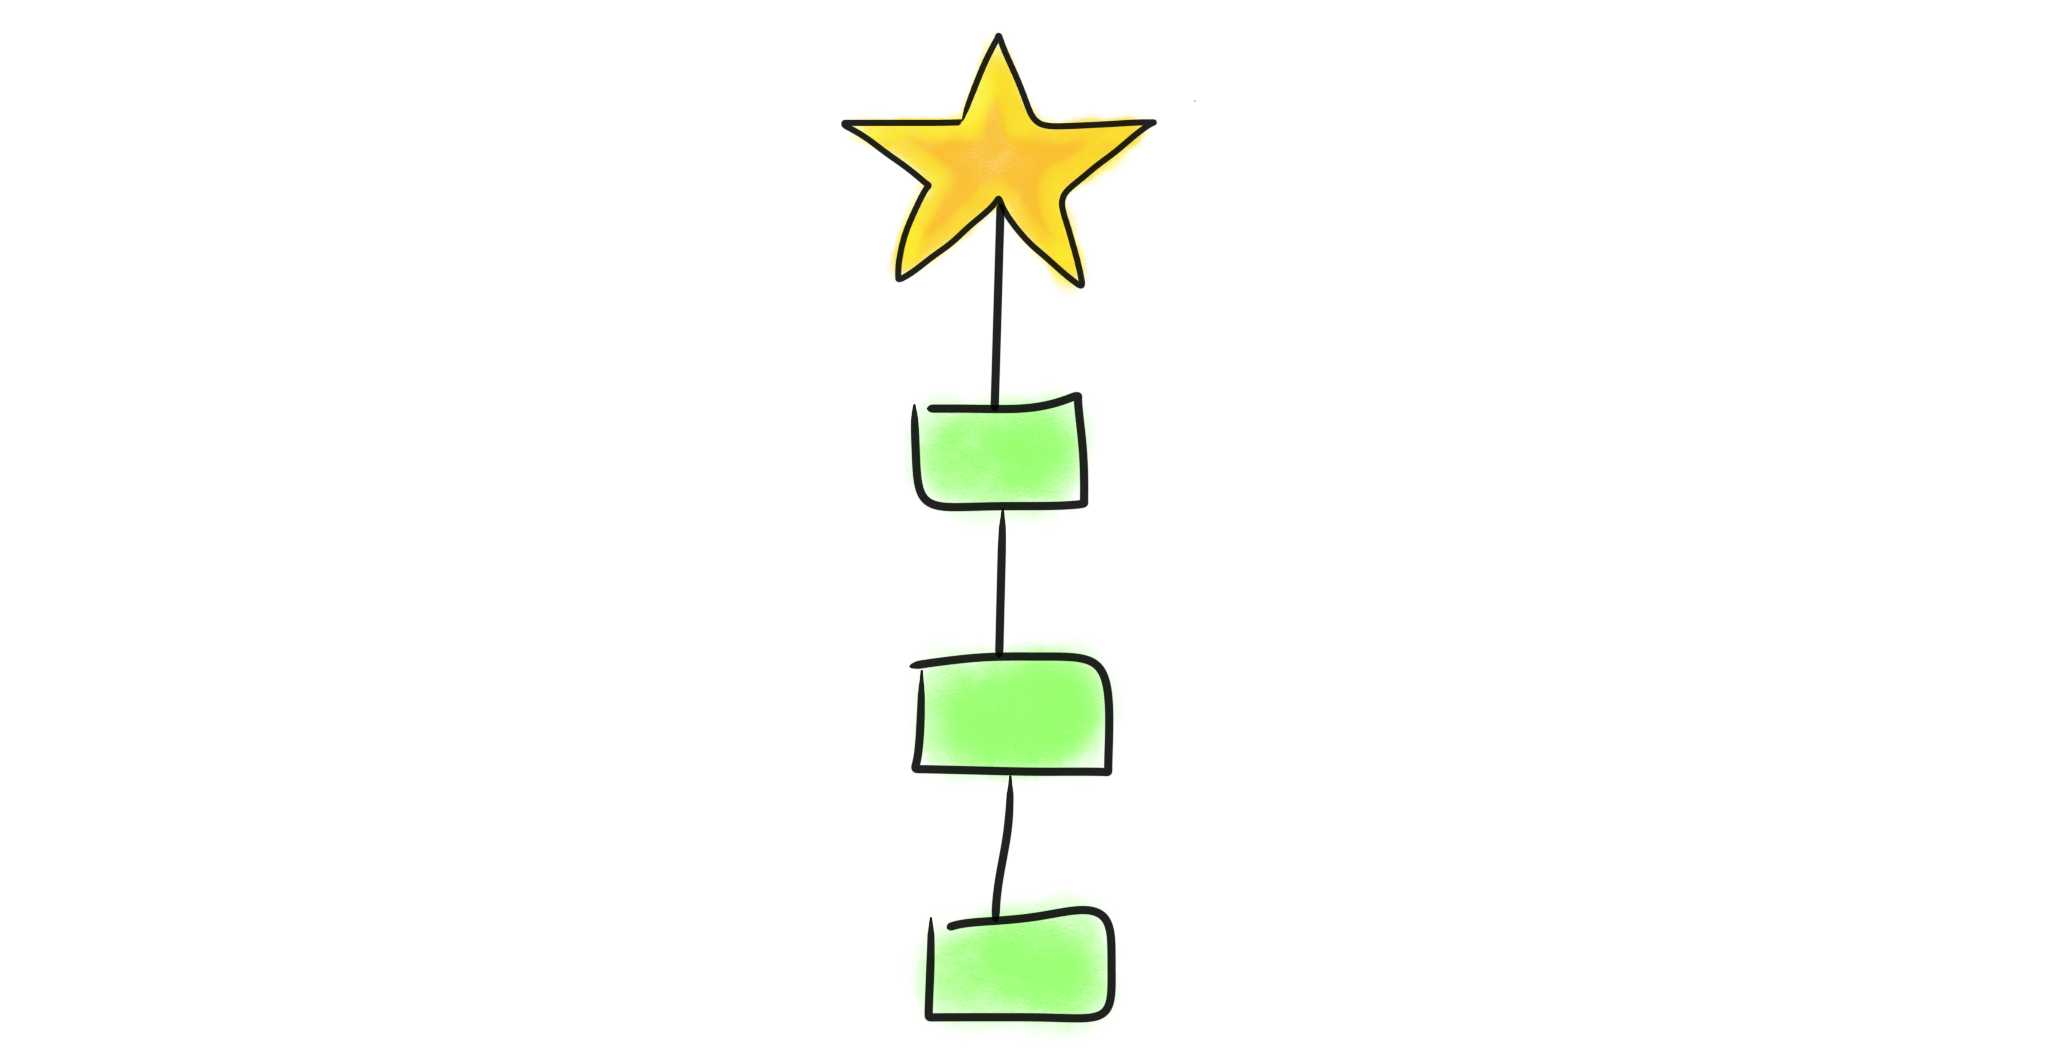 The Customer job sits at the top, like the star that decorates a Christmas tree